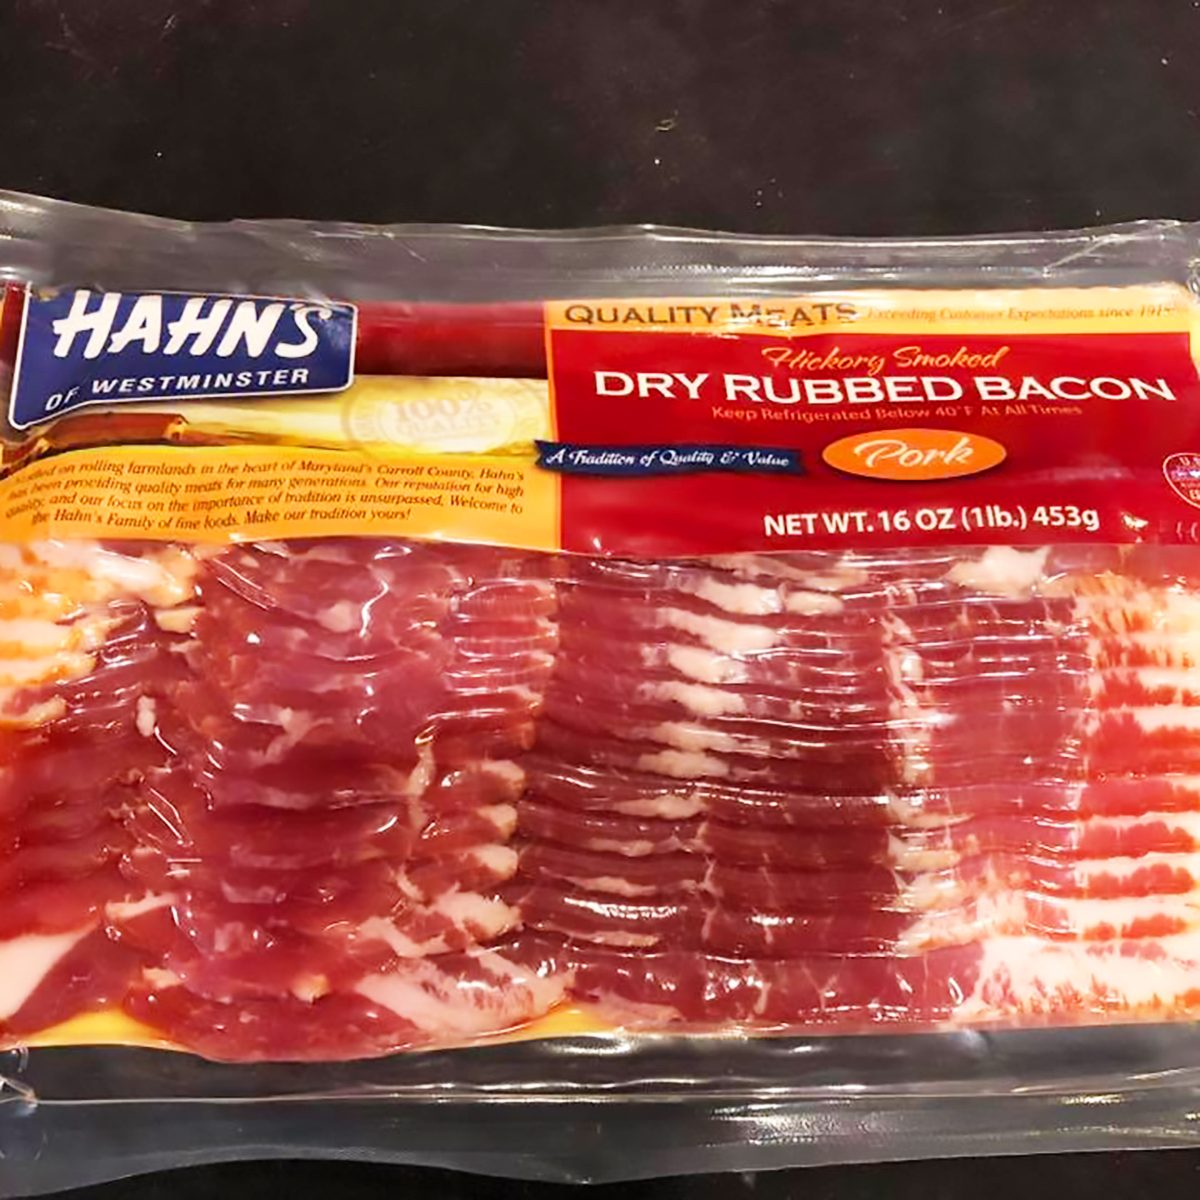 Best Bacon of Maryland